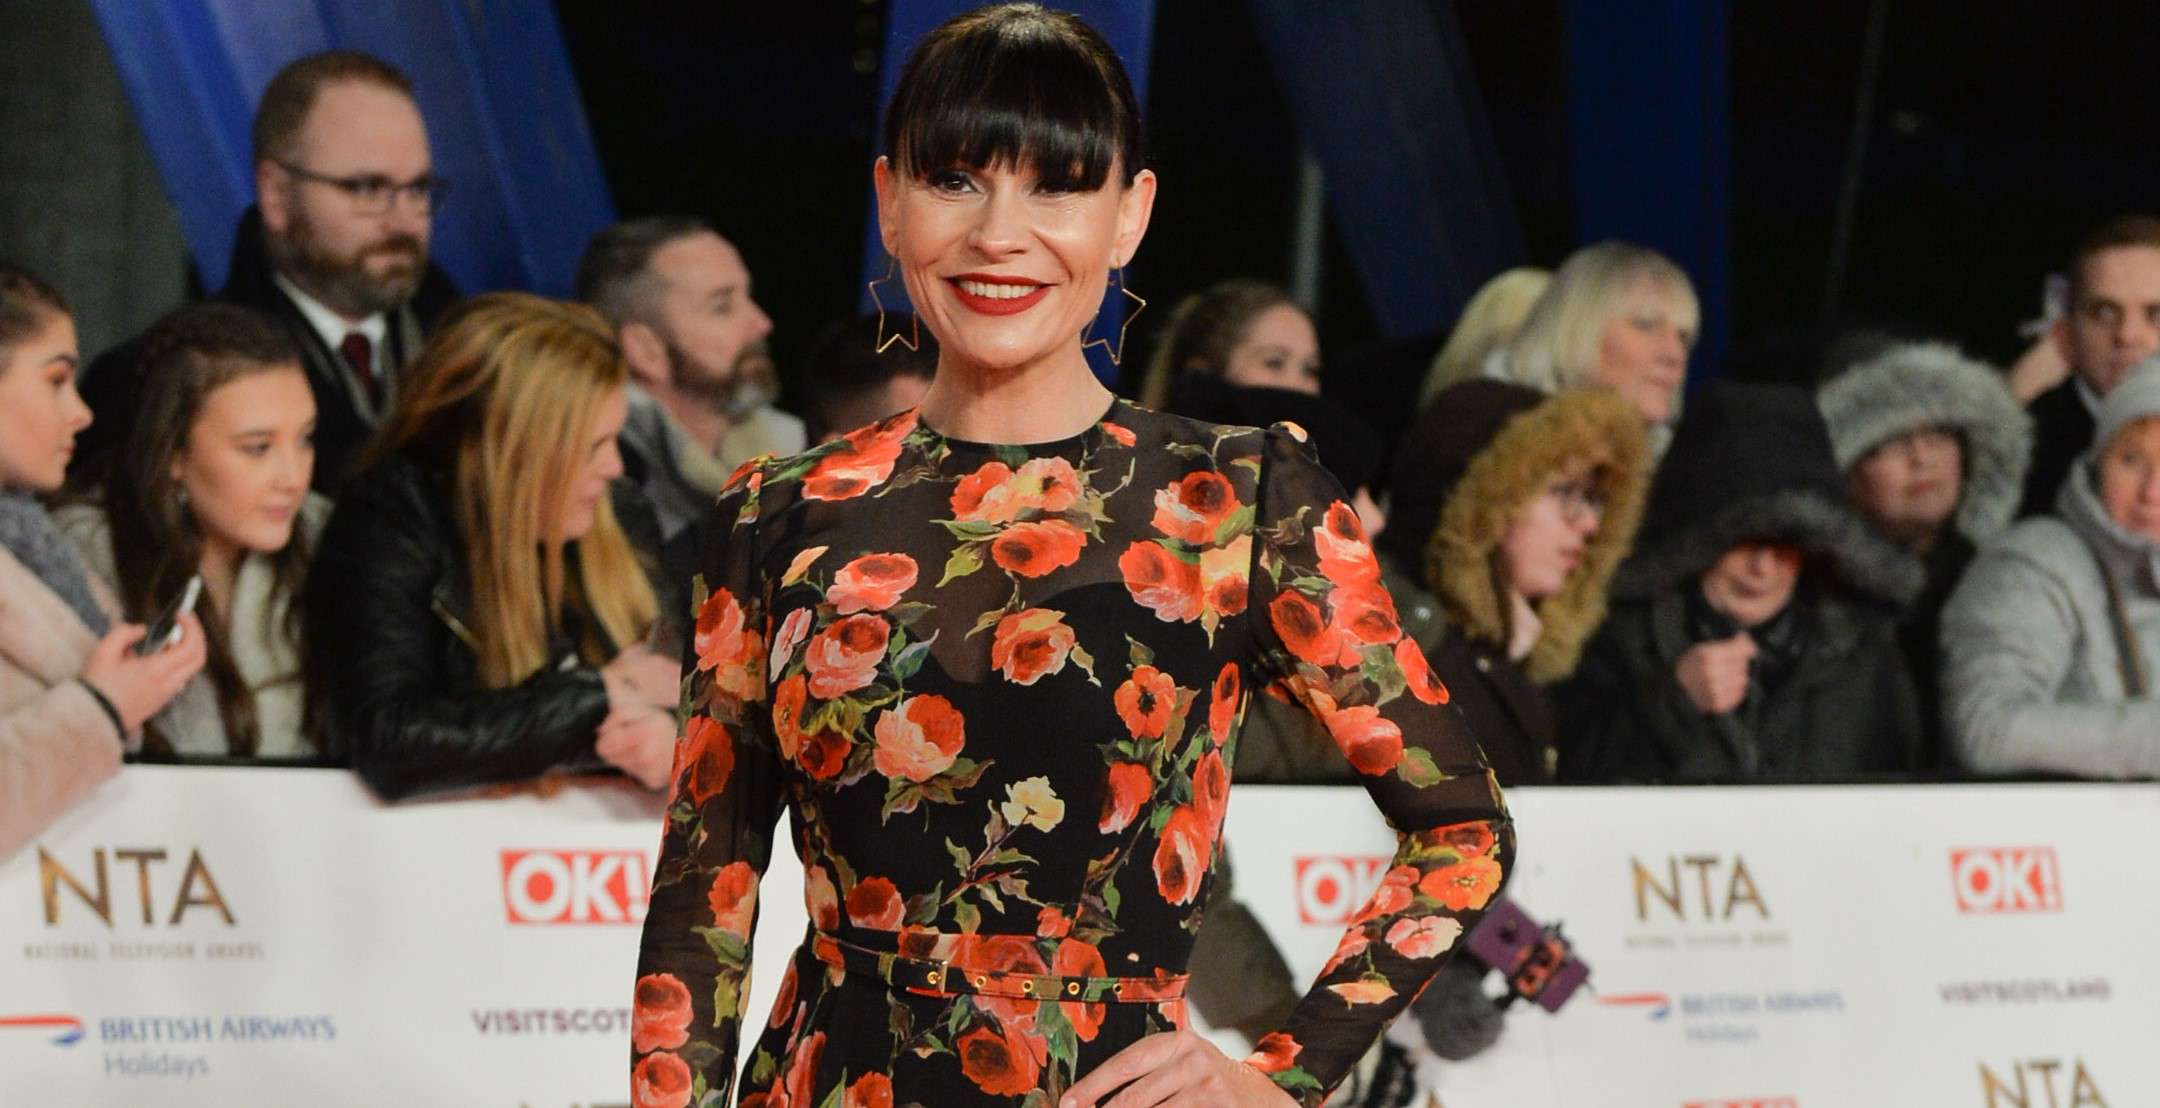 Emmerdale's Lucy Pargeter full of praise for Duchess of Sussex